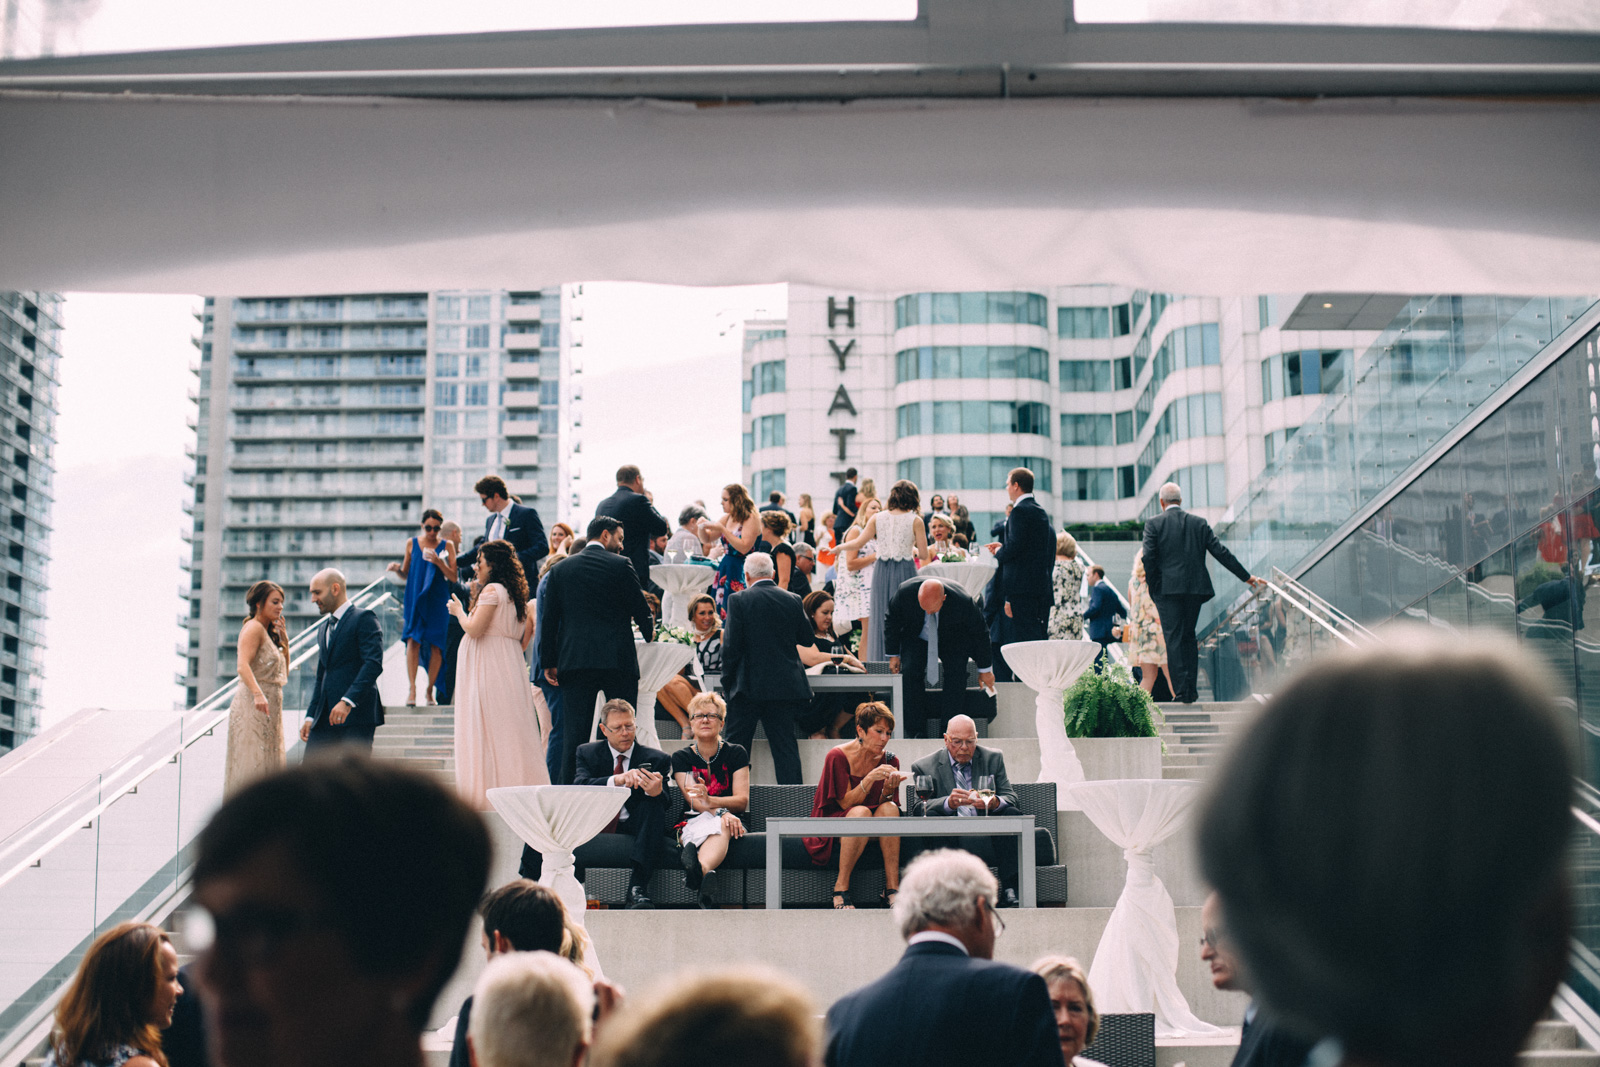 Malaparte-wedding-photography-Toronto-by-Sam-Wong-of-Visual-Cravings_54